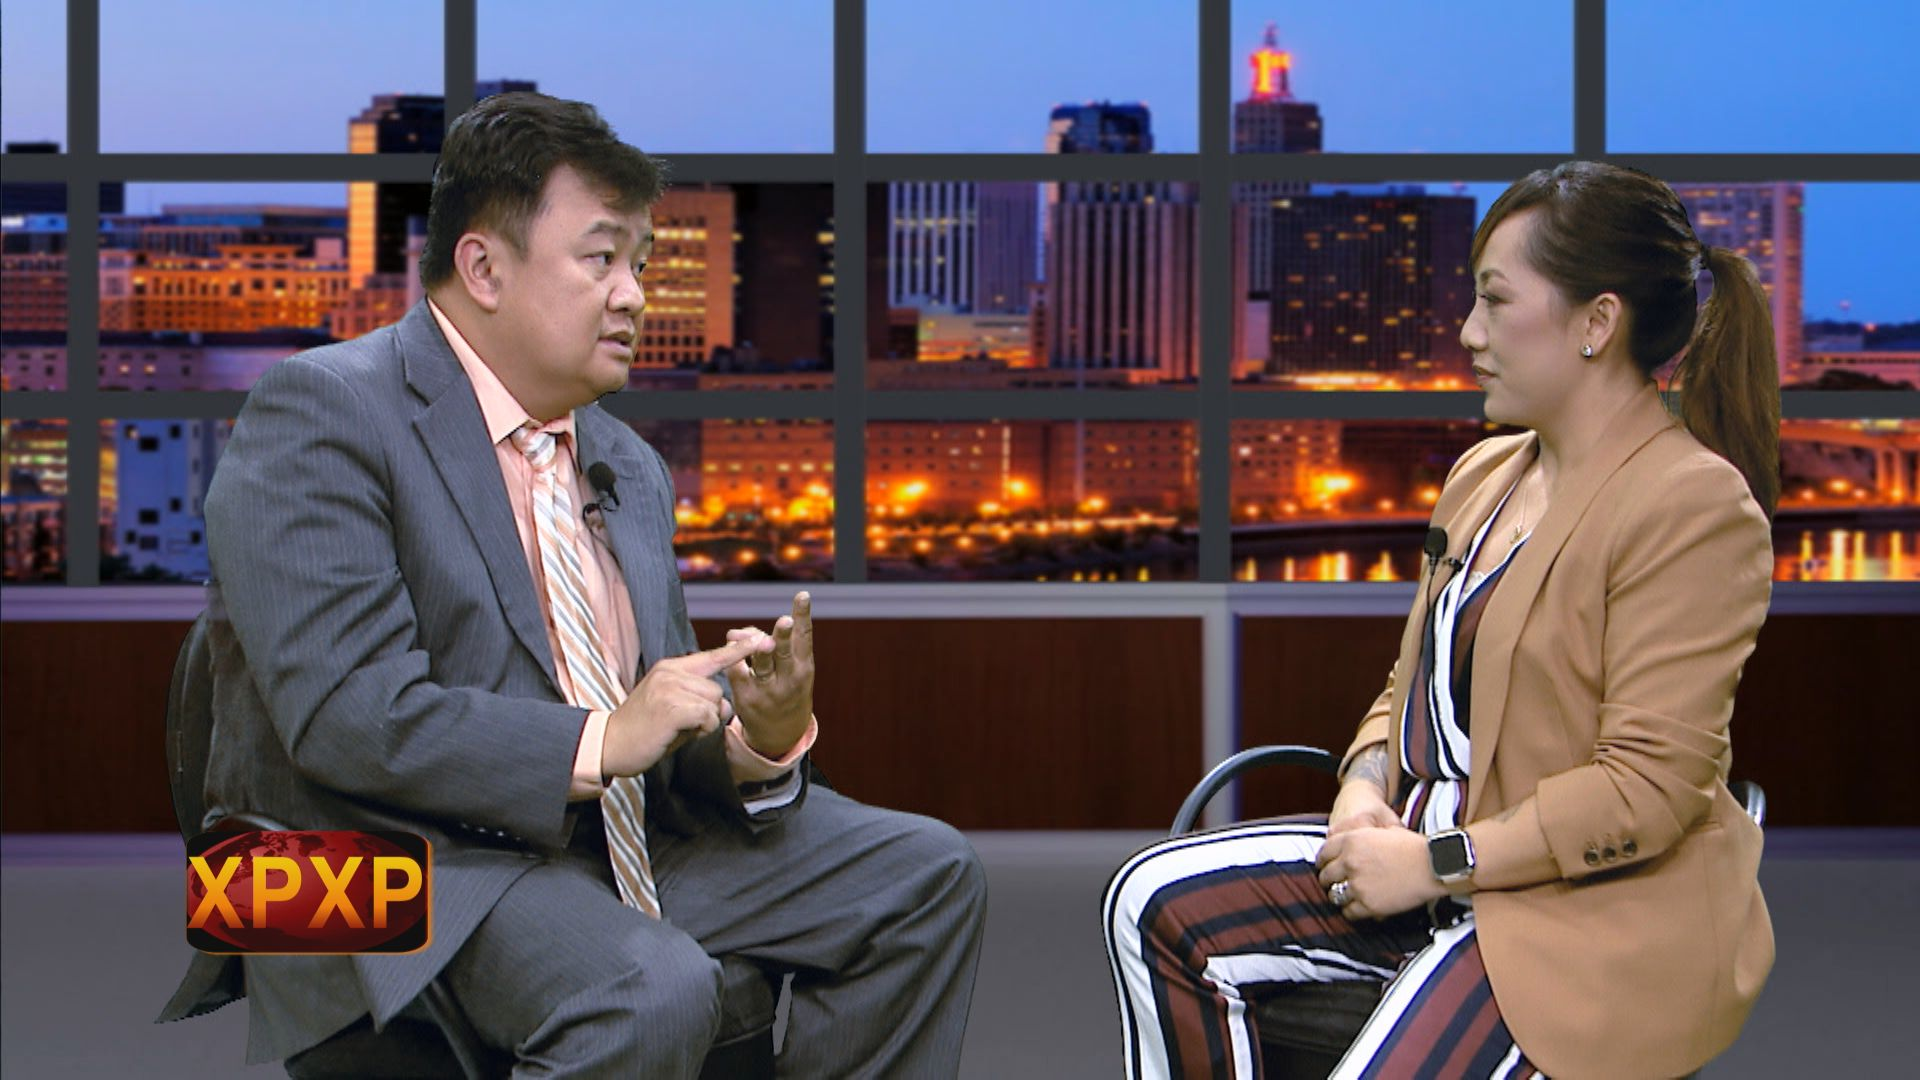 XPXP WITH GUEST BLONG YANG WHO IS RUNNING FOR HENNEPIN COUNTY COMMISSIONER DIST. 2.